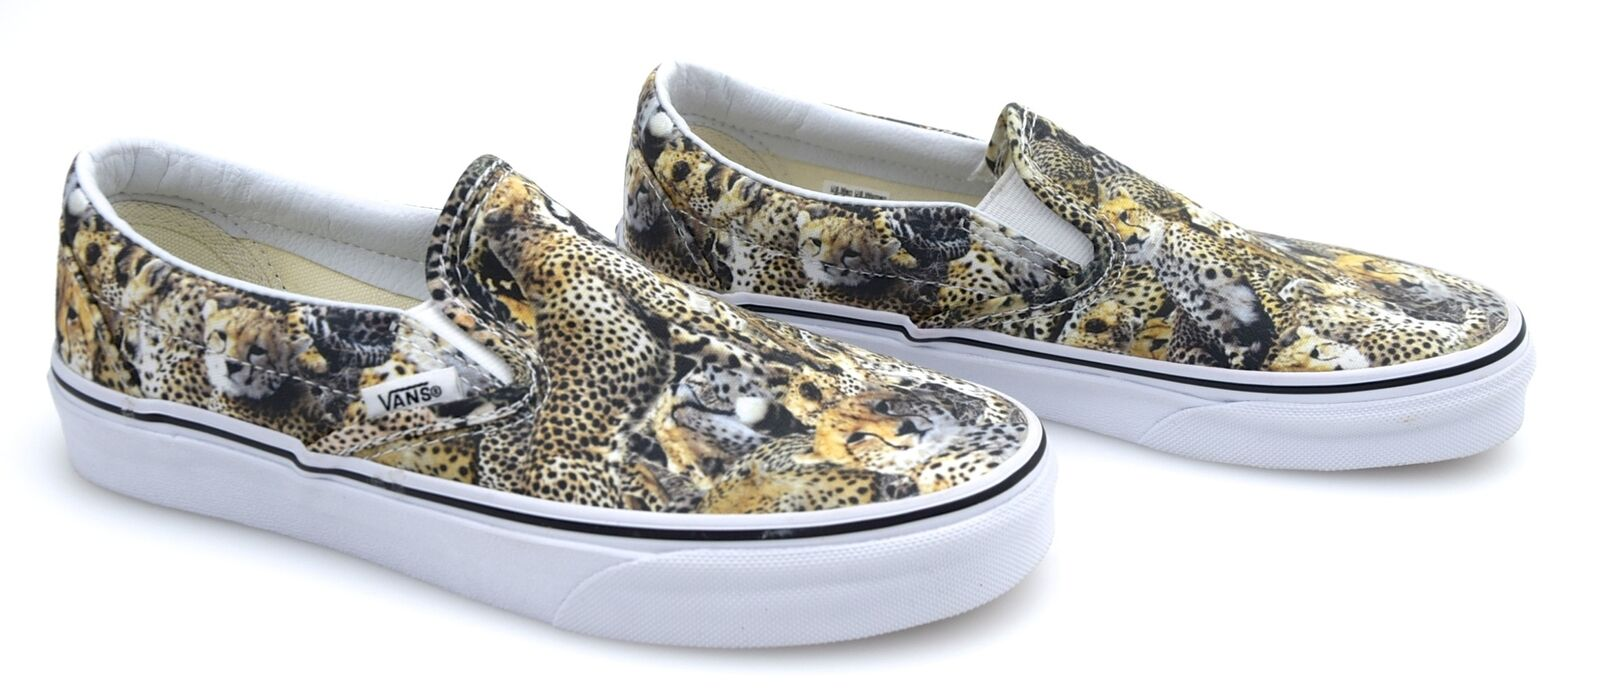 VANS WOMAN MAN SNEAKER SLIP ON SHOES LEOPARD FANTASY CODE CLASSIC SLIP-ON ZMRFGZ